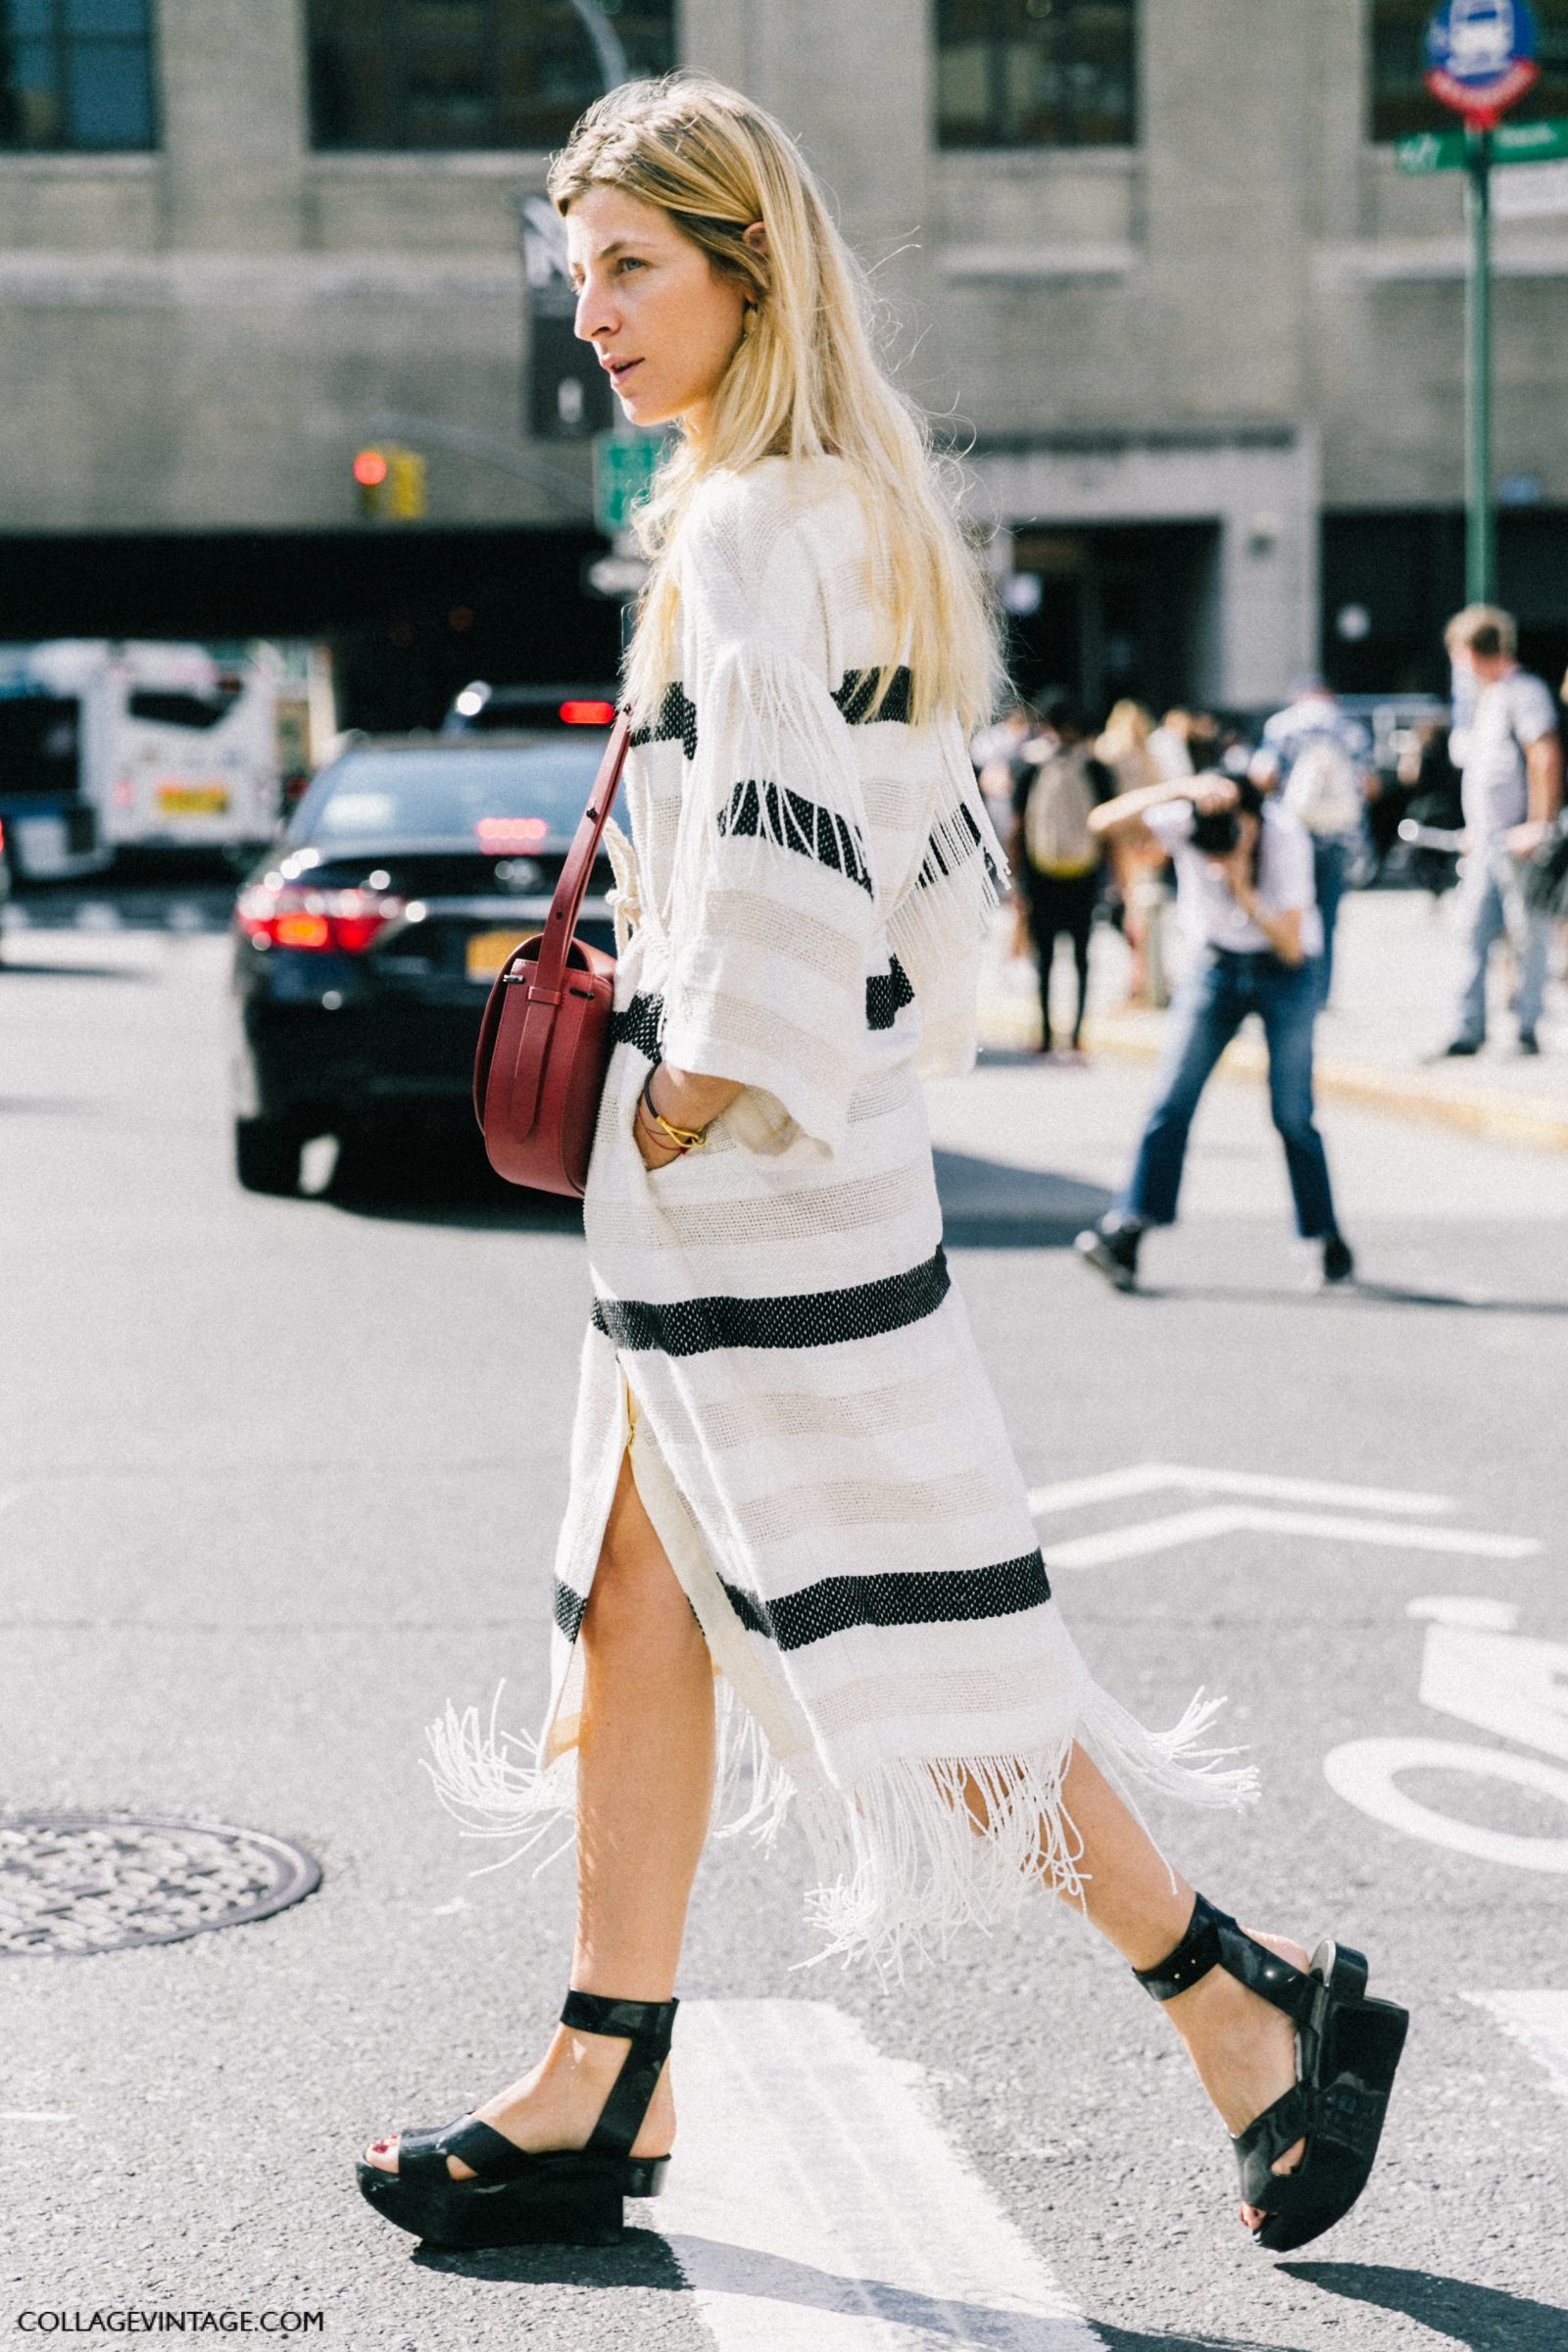 nyfw-new_york_fashion_week_ss17-street_style-outfits-collage_vintage-vintage-phillip_lim-the-row-proenza_schouler-rossie_aussolin-362